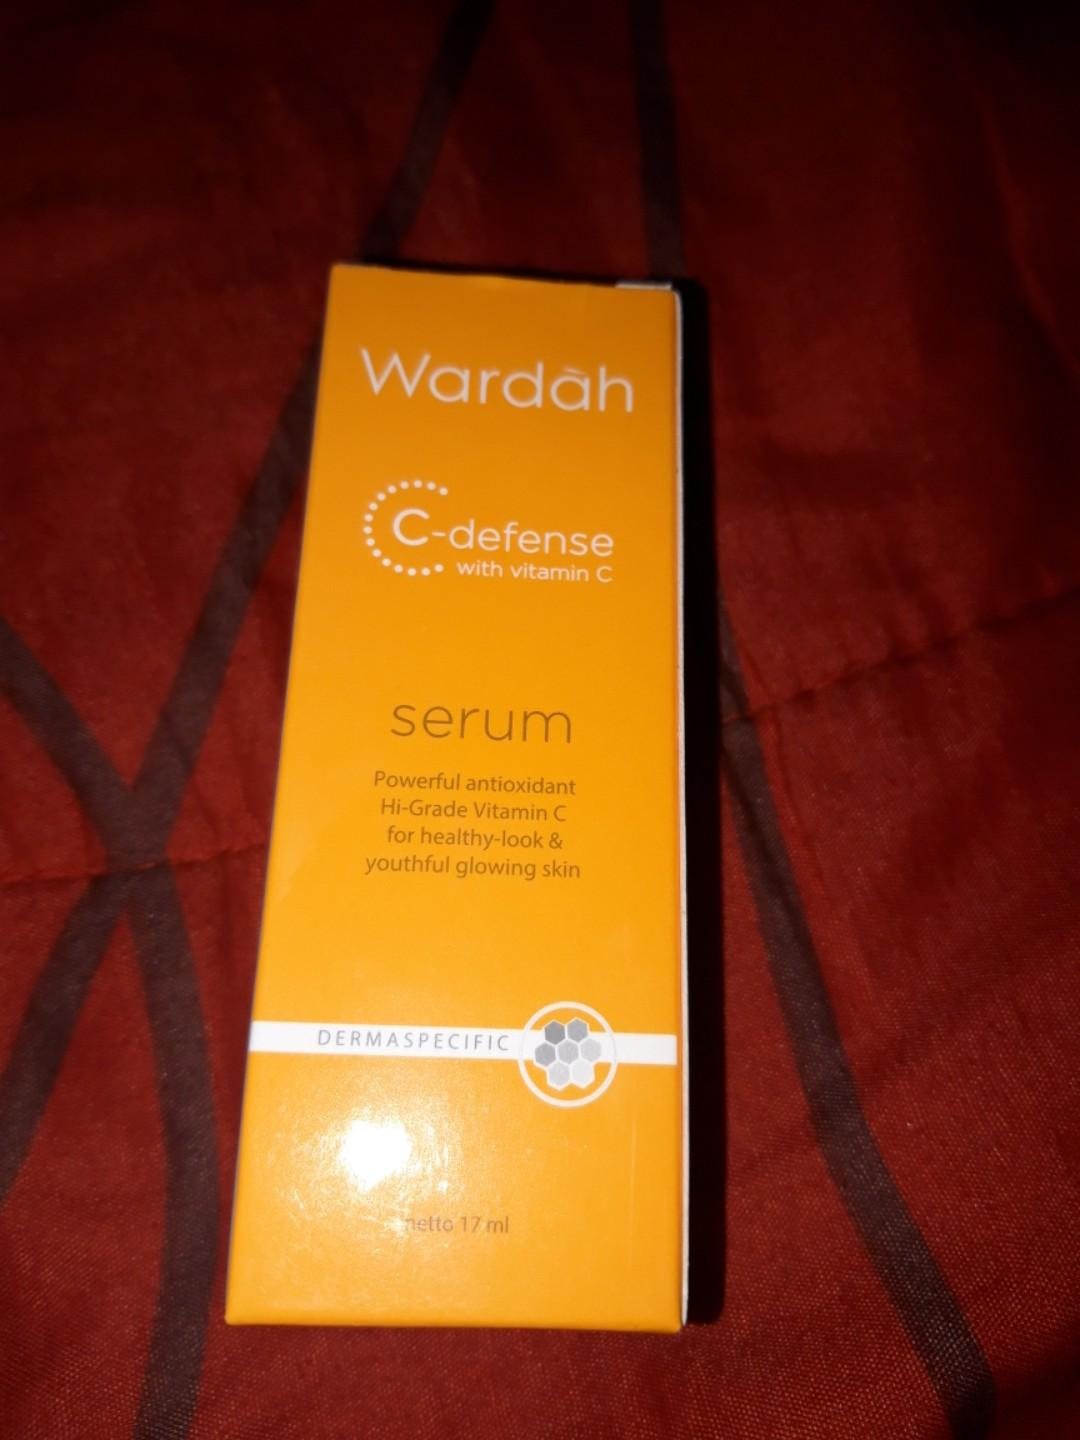 Serum Wardah Vit. C